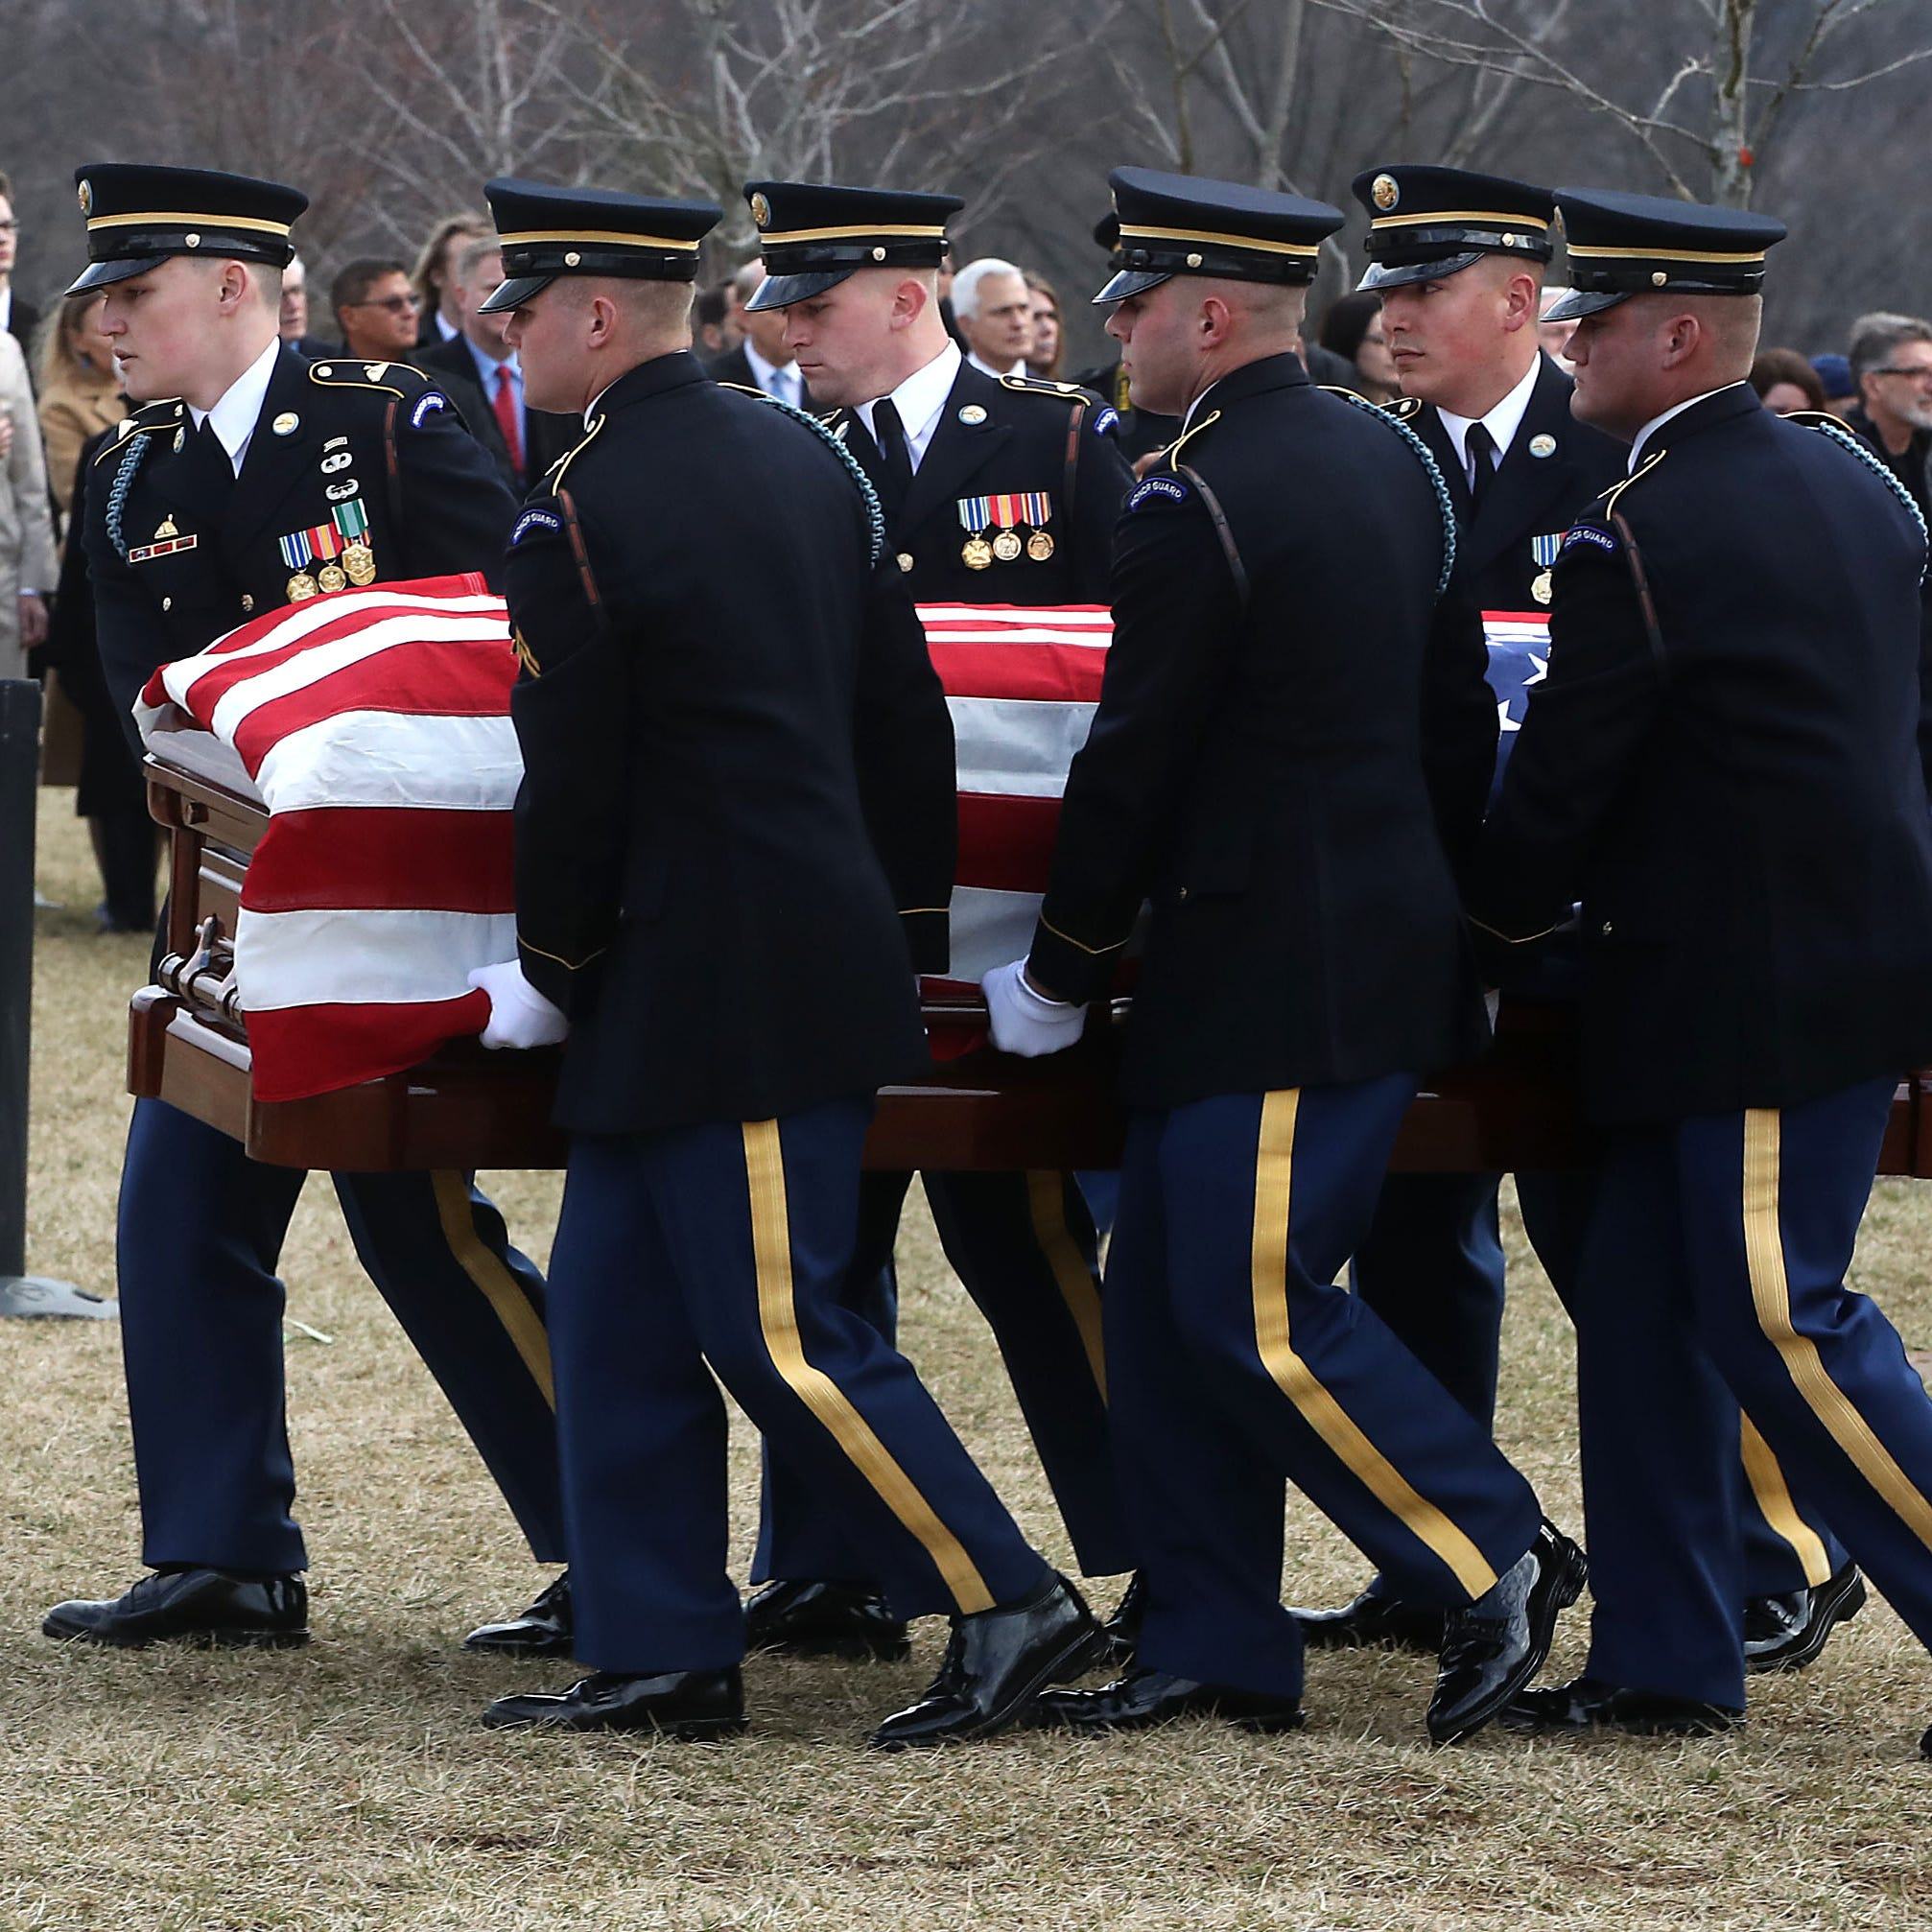 John Dingell laid to rest in Arlington National Cemetery